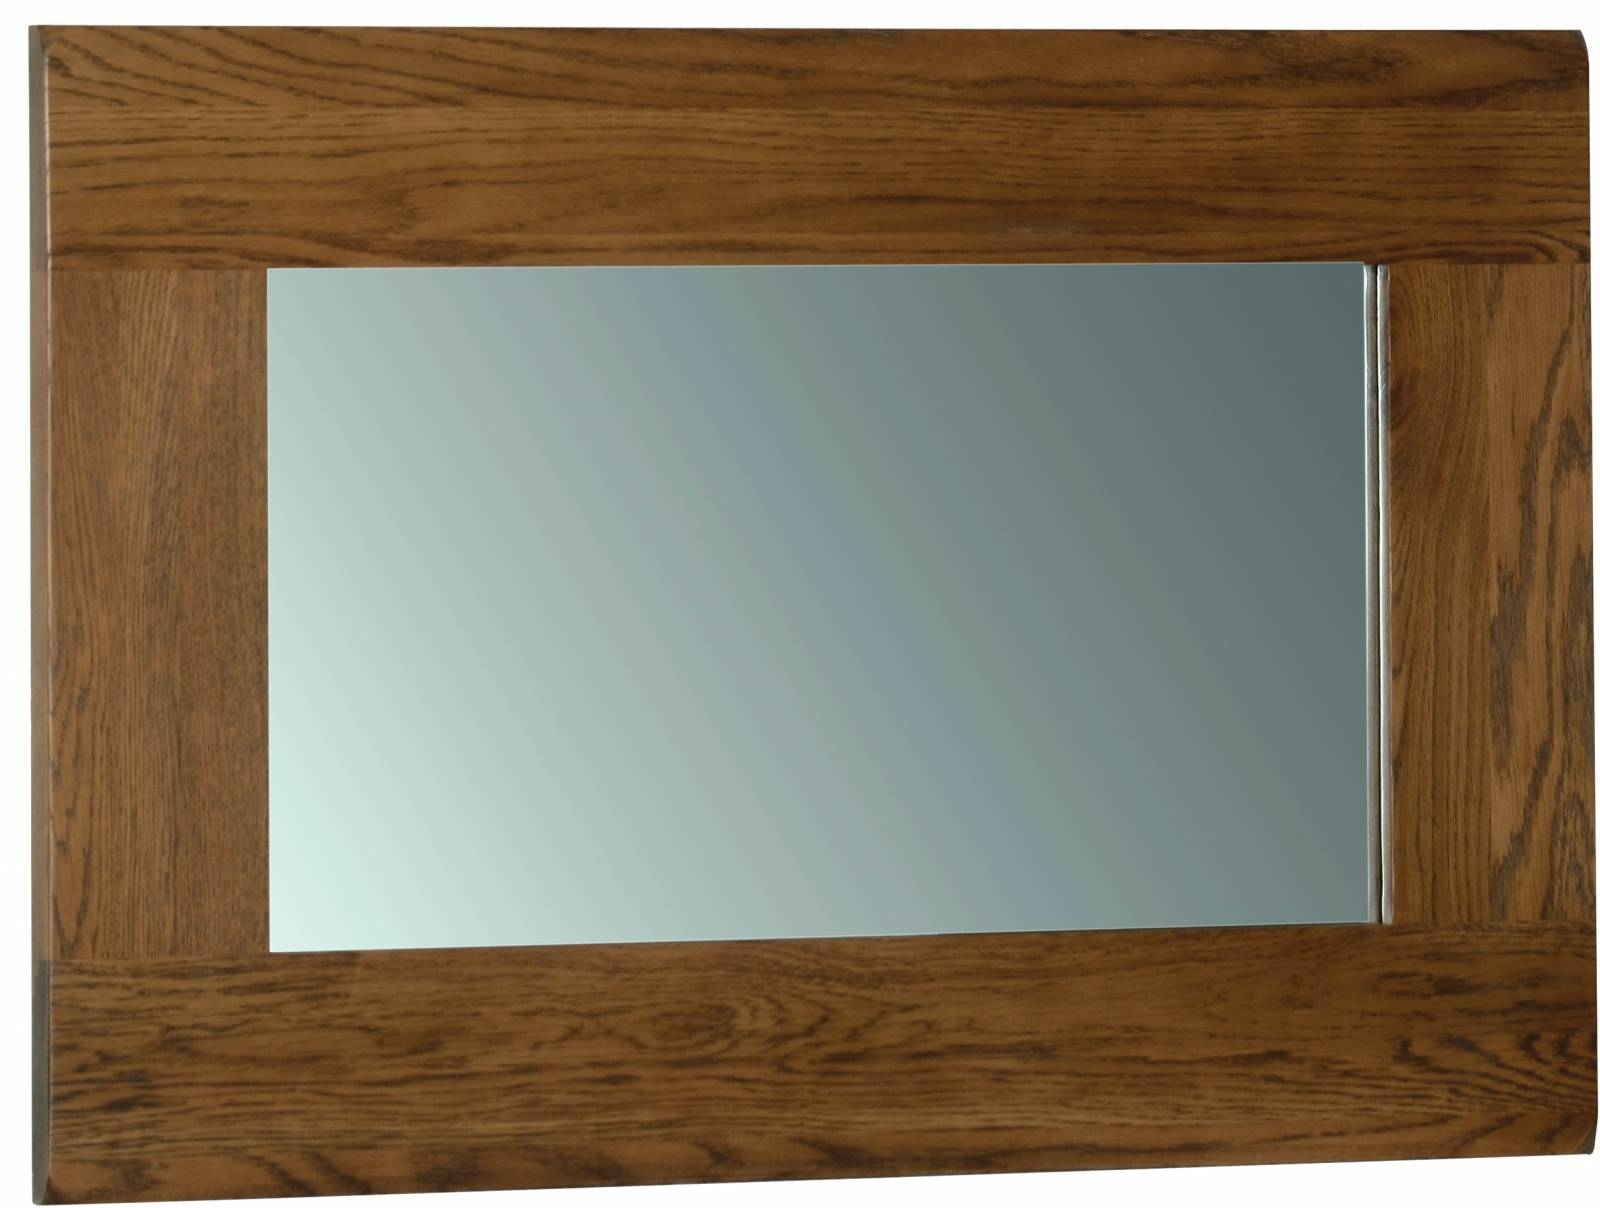 Oak Wall Mirror 900 X 600 - Oak - Mirrors - Pine Shop Bury within Rustic Oak Mirrors (Image 15 of 25)